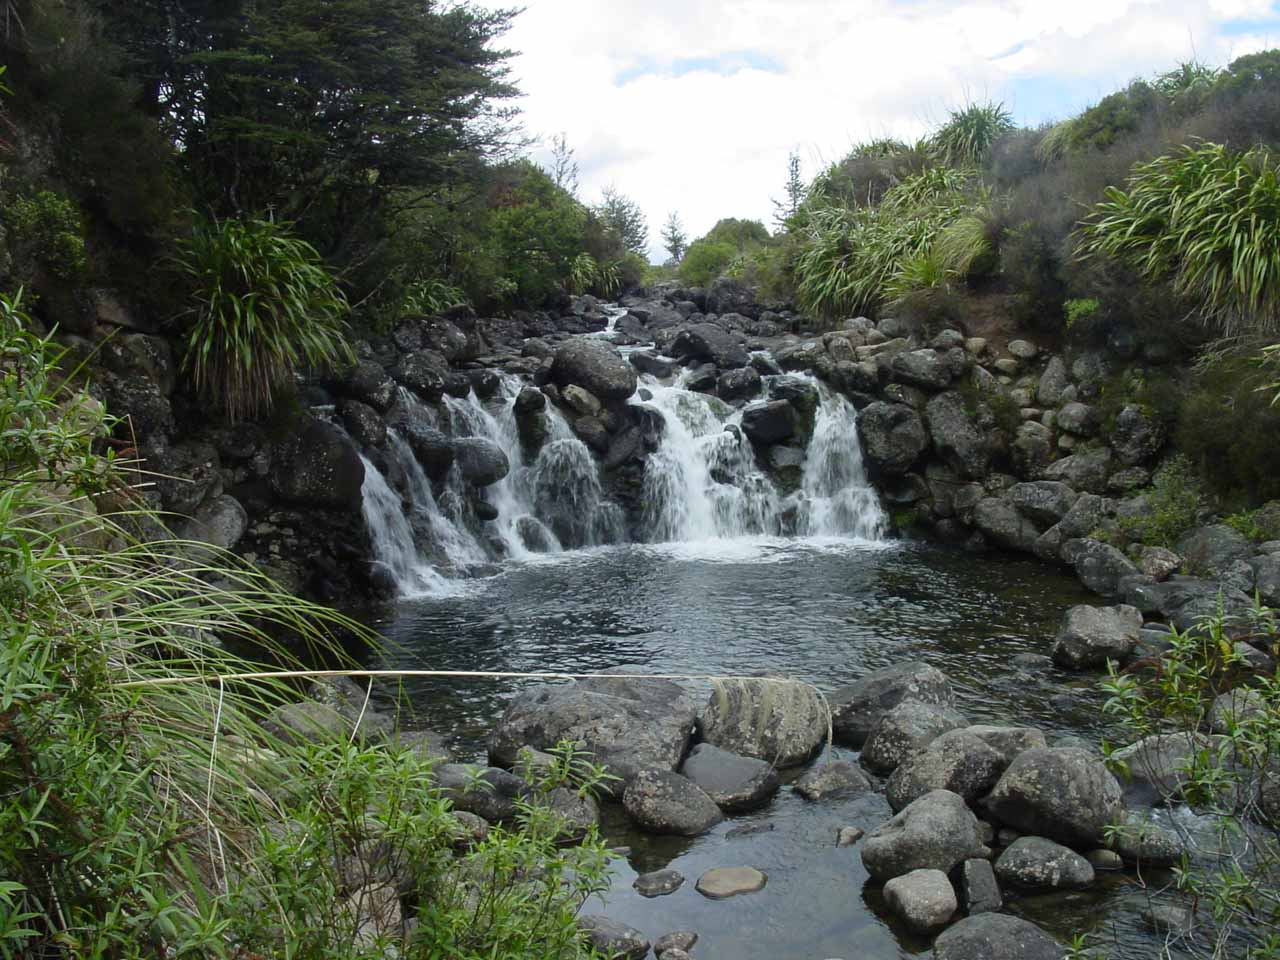 Some waterfalls that I think might be Mahuia Rapids